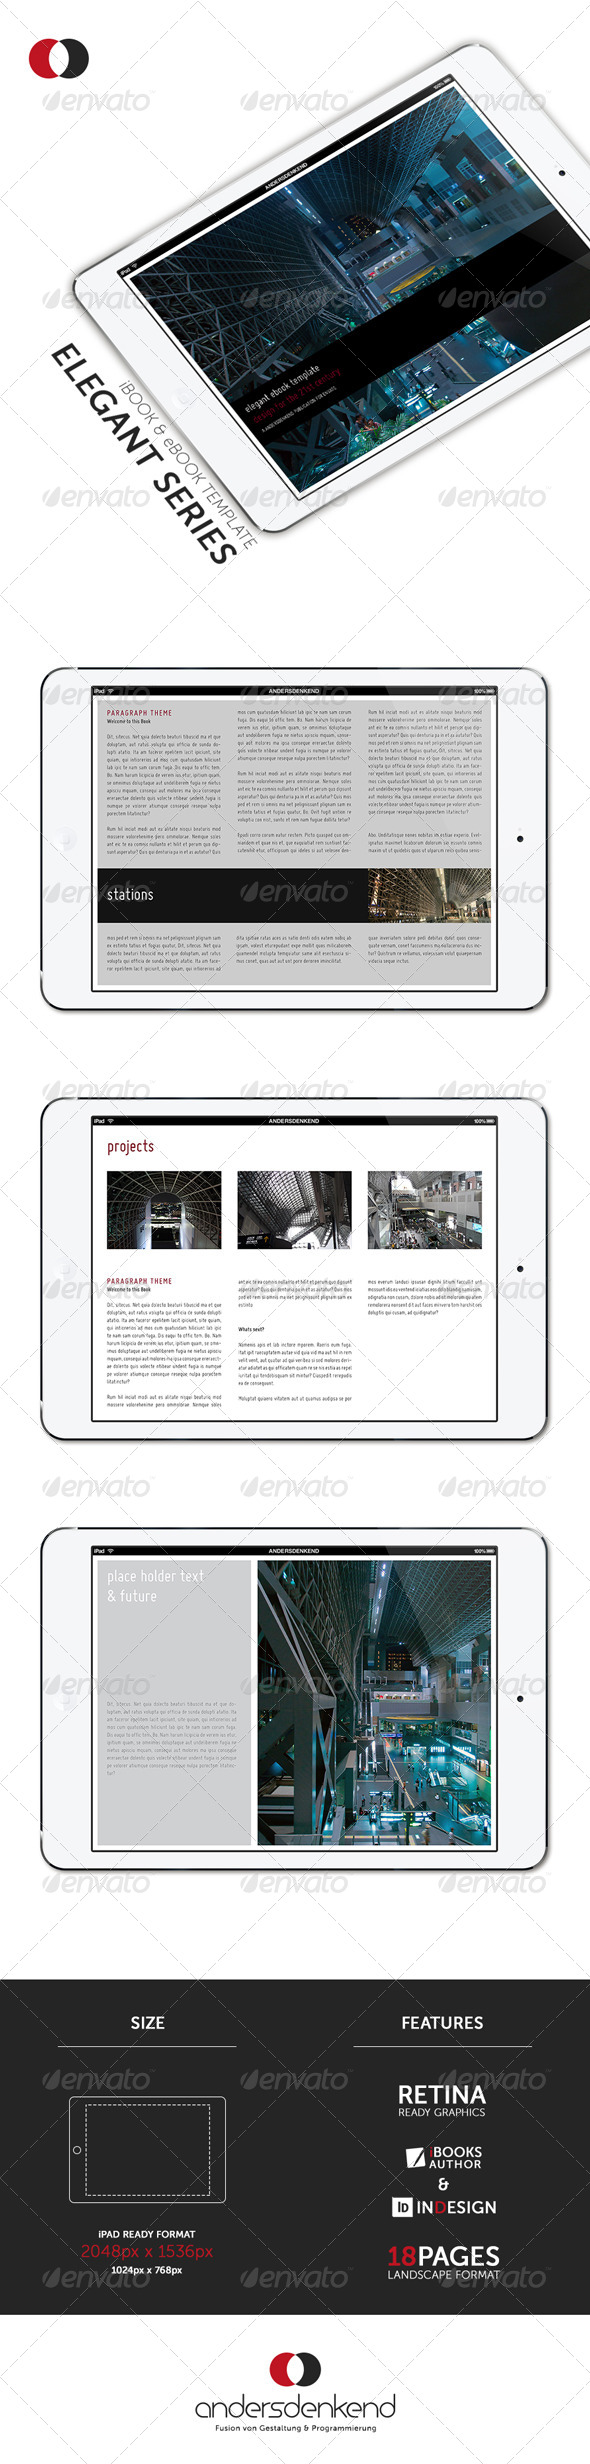 GraphicRiver Modern Tablet Template Vol.1 4733441